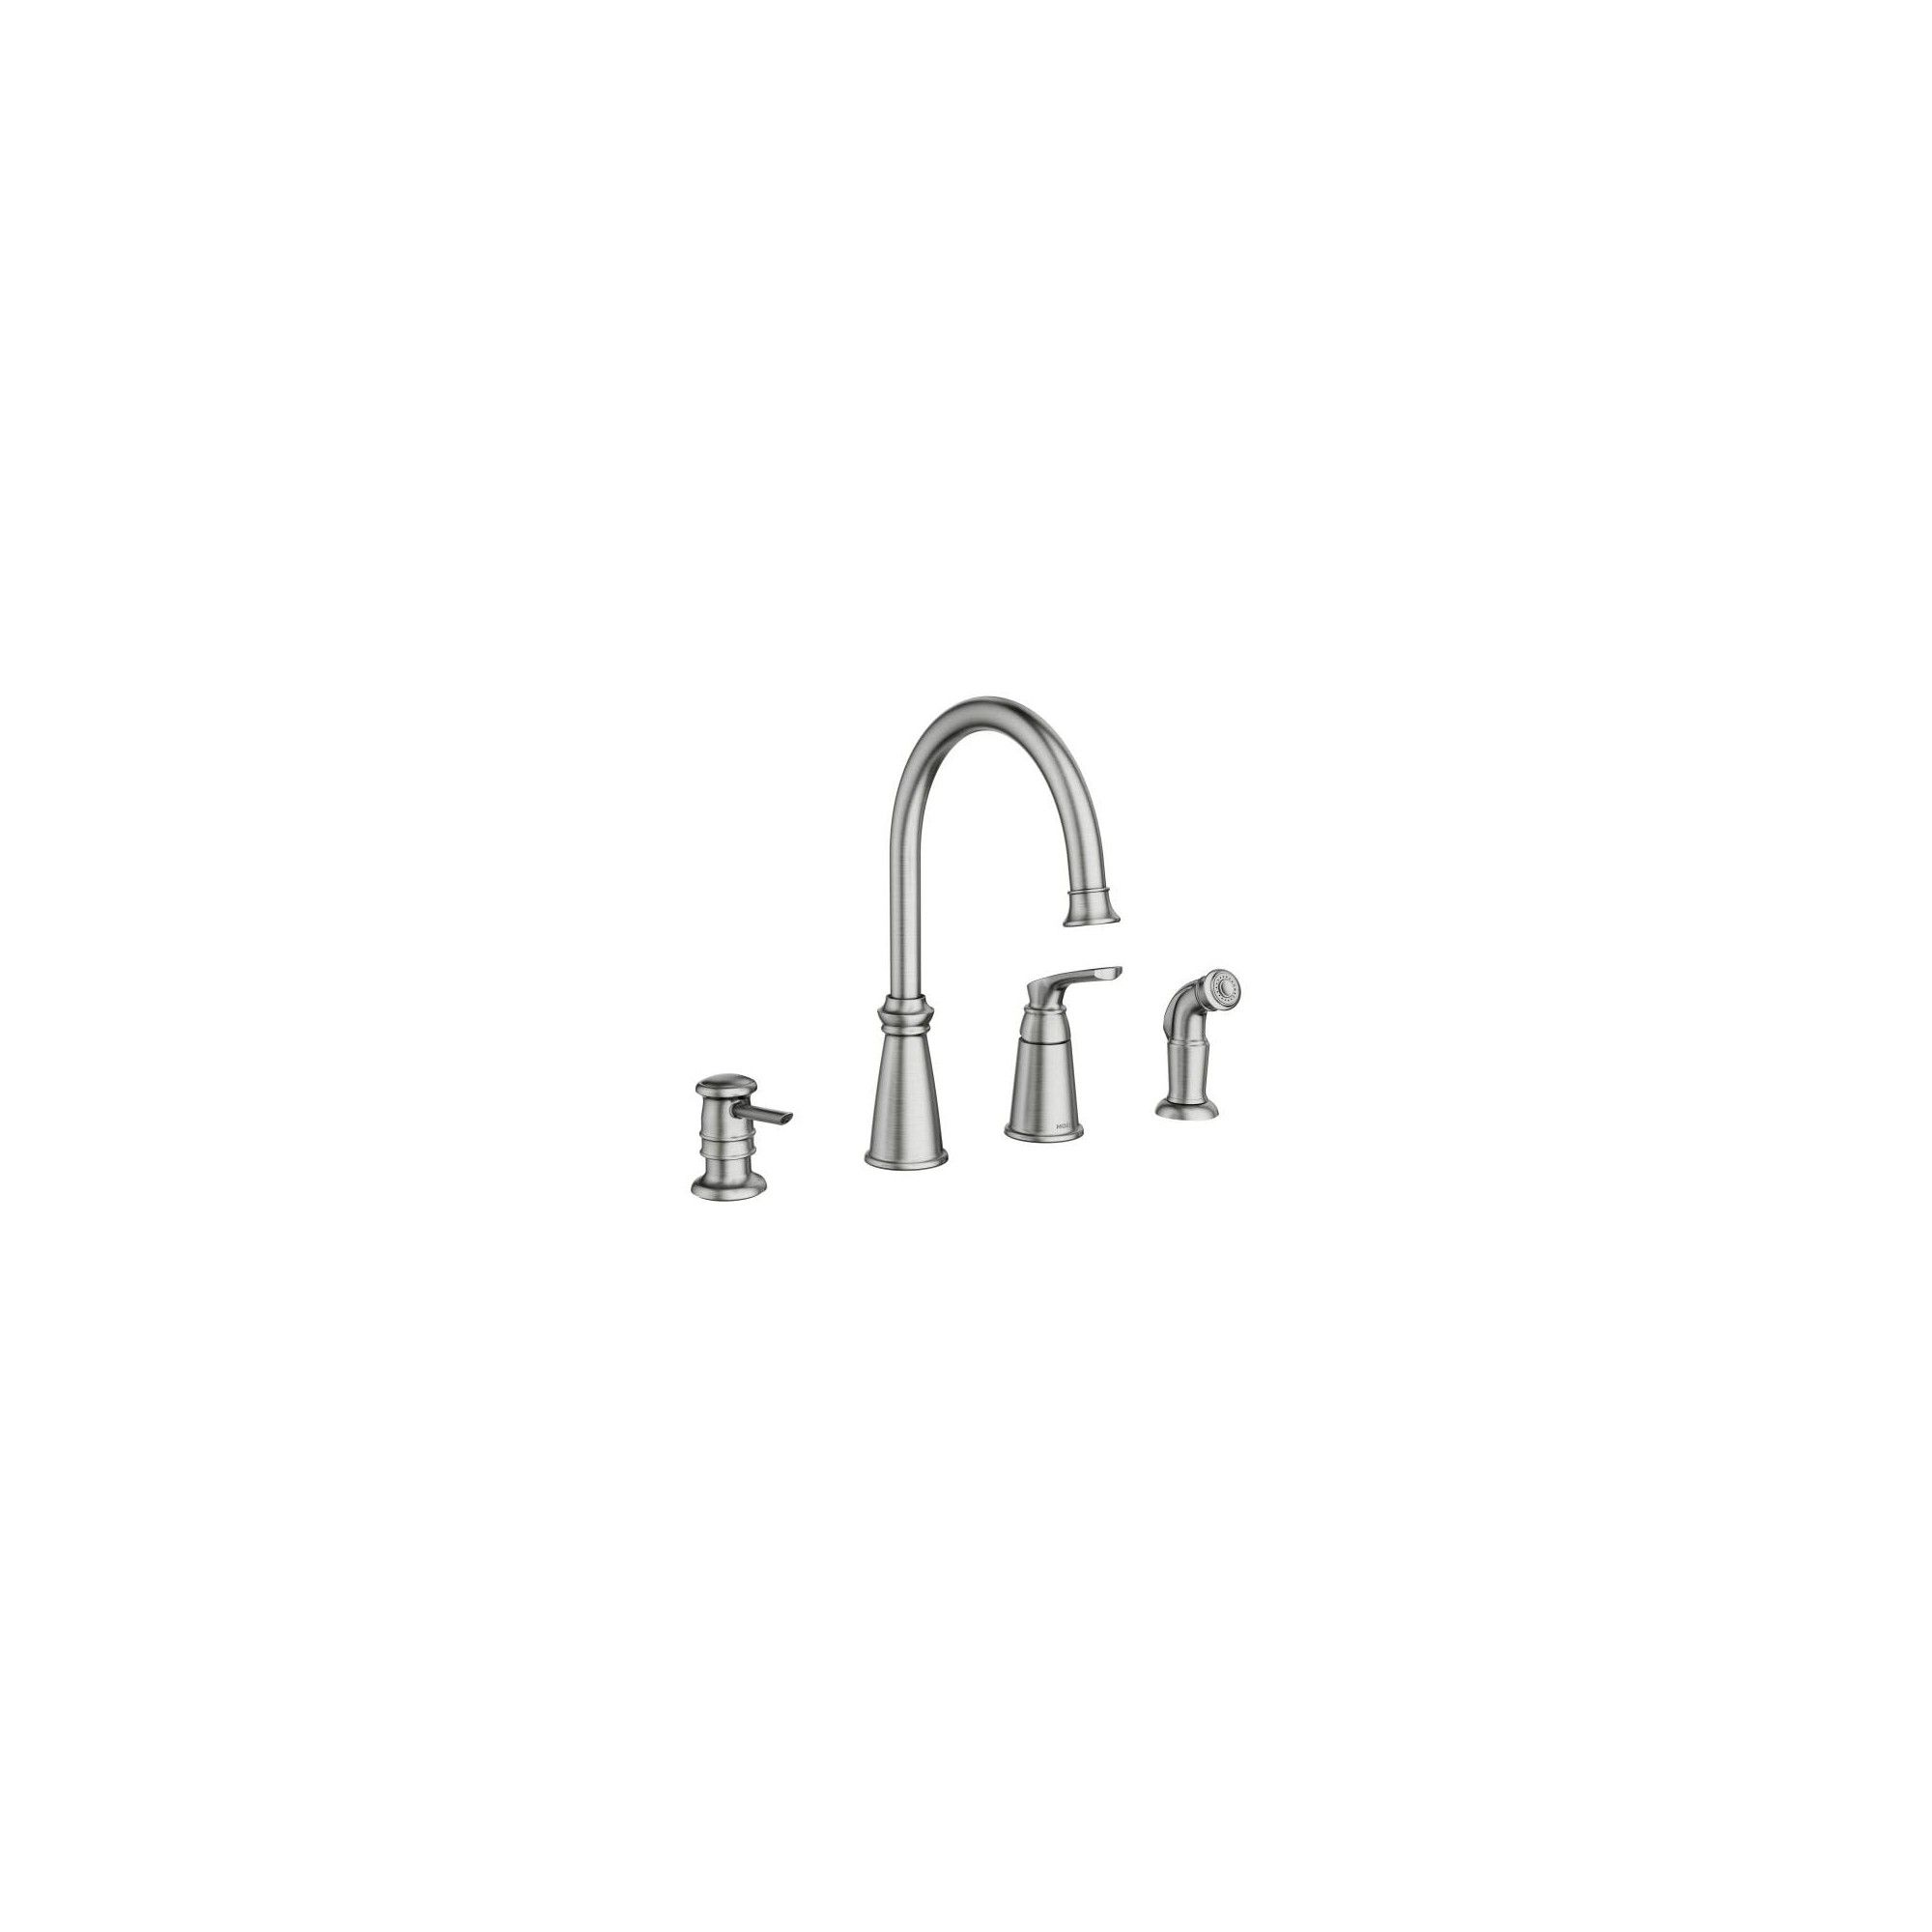 Moen 87044 Whitmore Single Handle High Arch Kitchen Faucet With